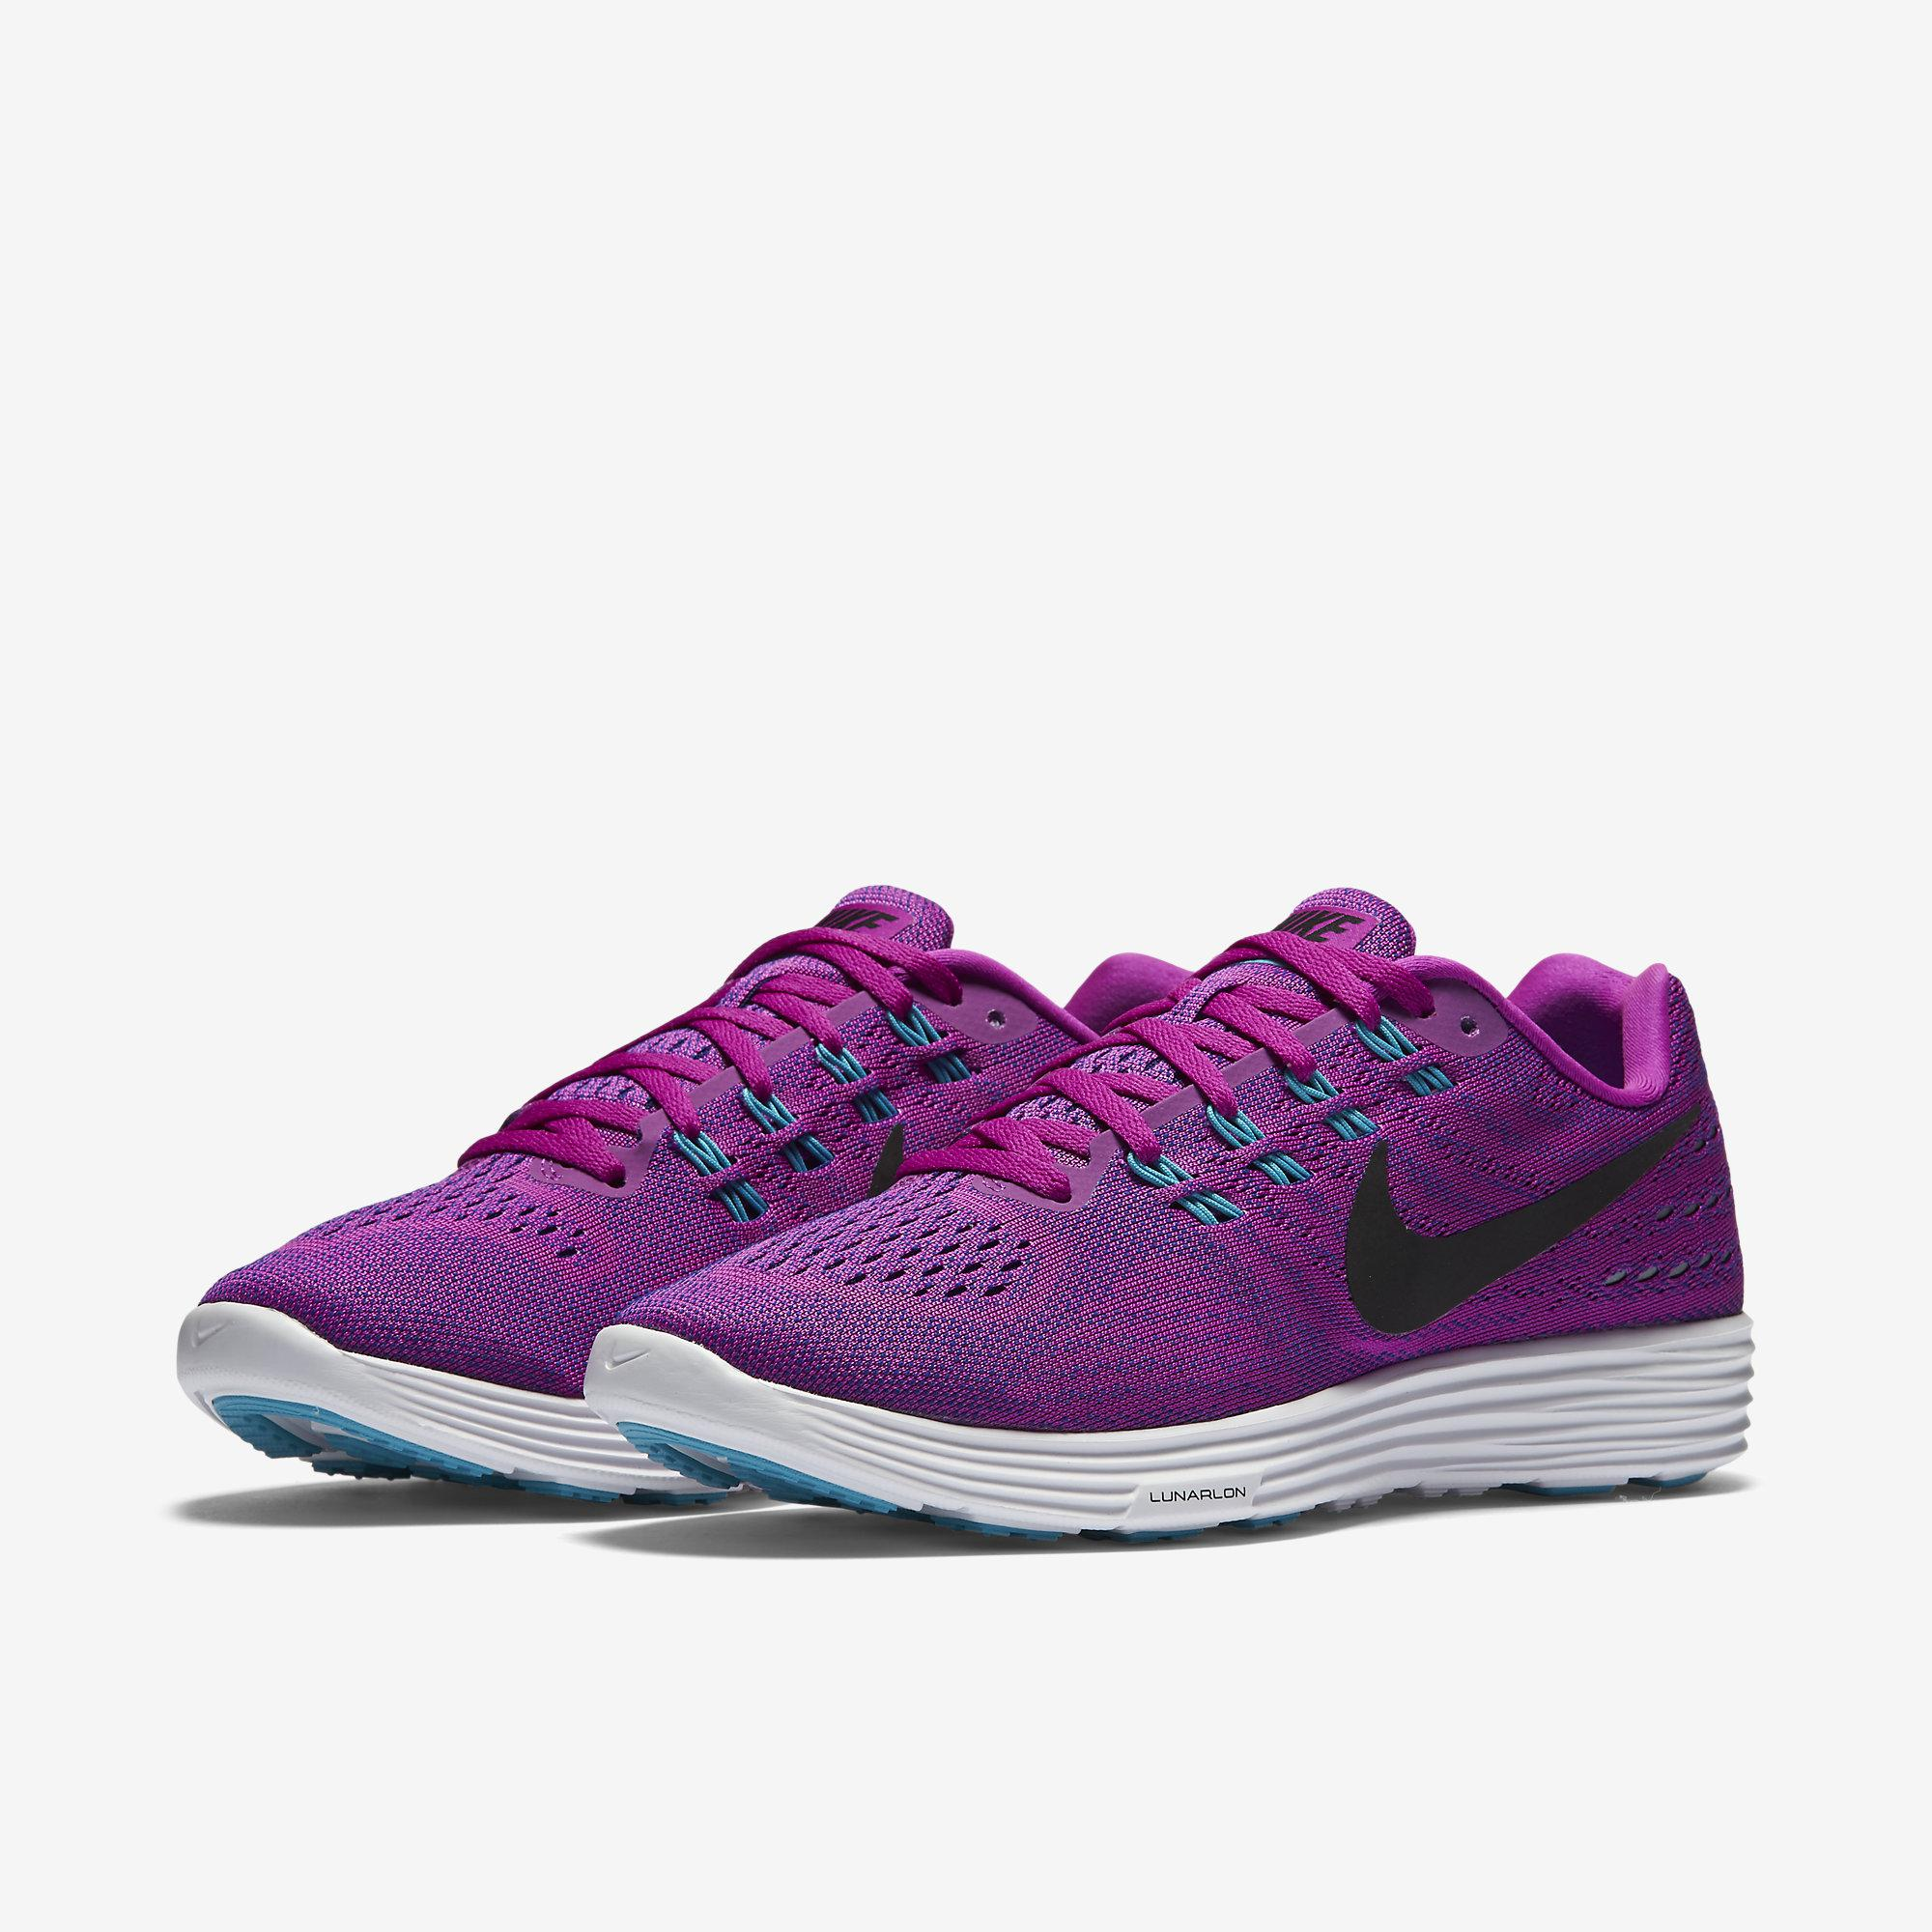 Nike Womens LunarTempo 2 Running Shoes - Hyper Violet